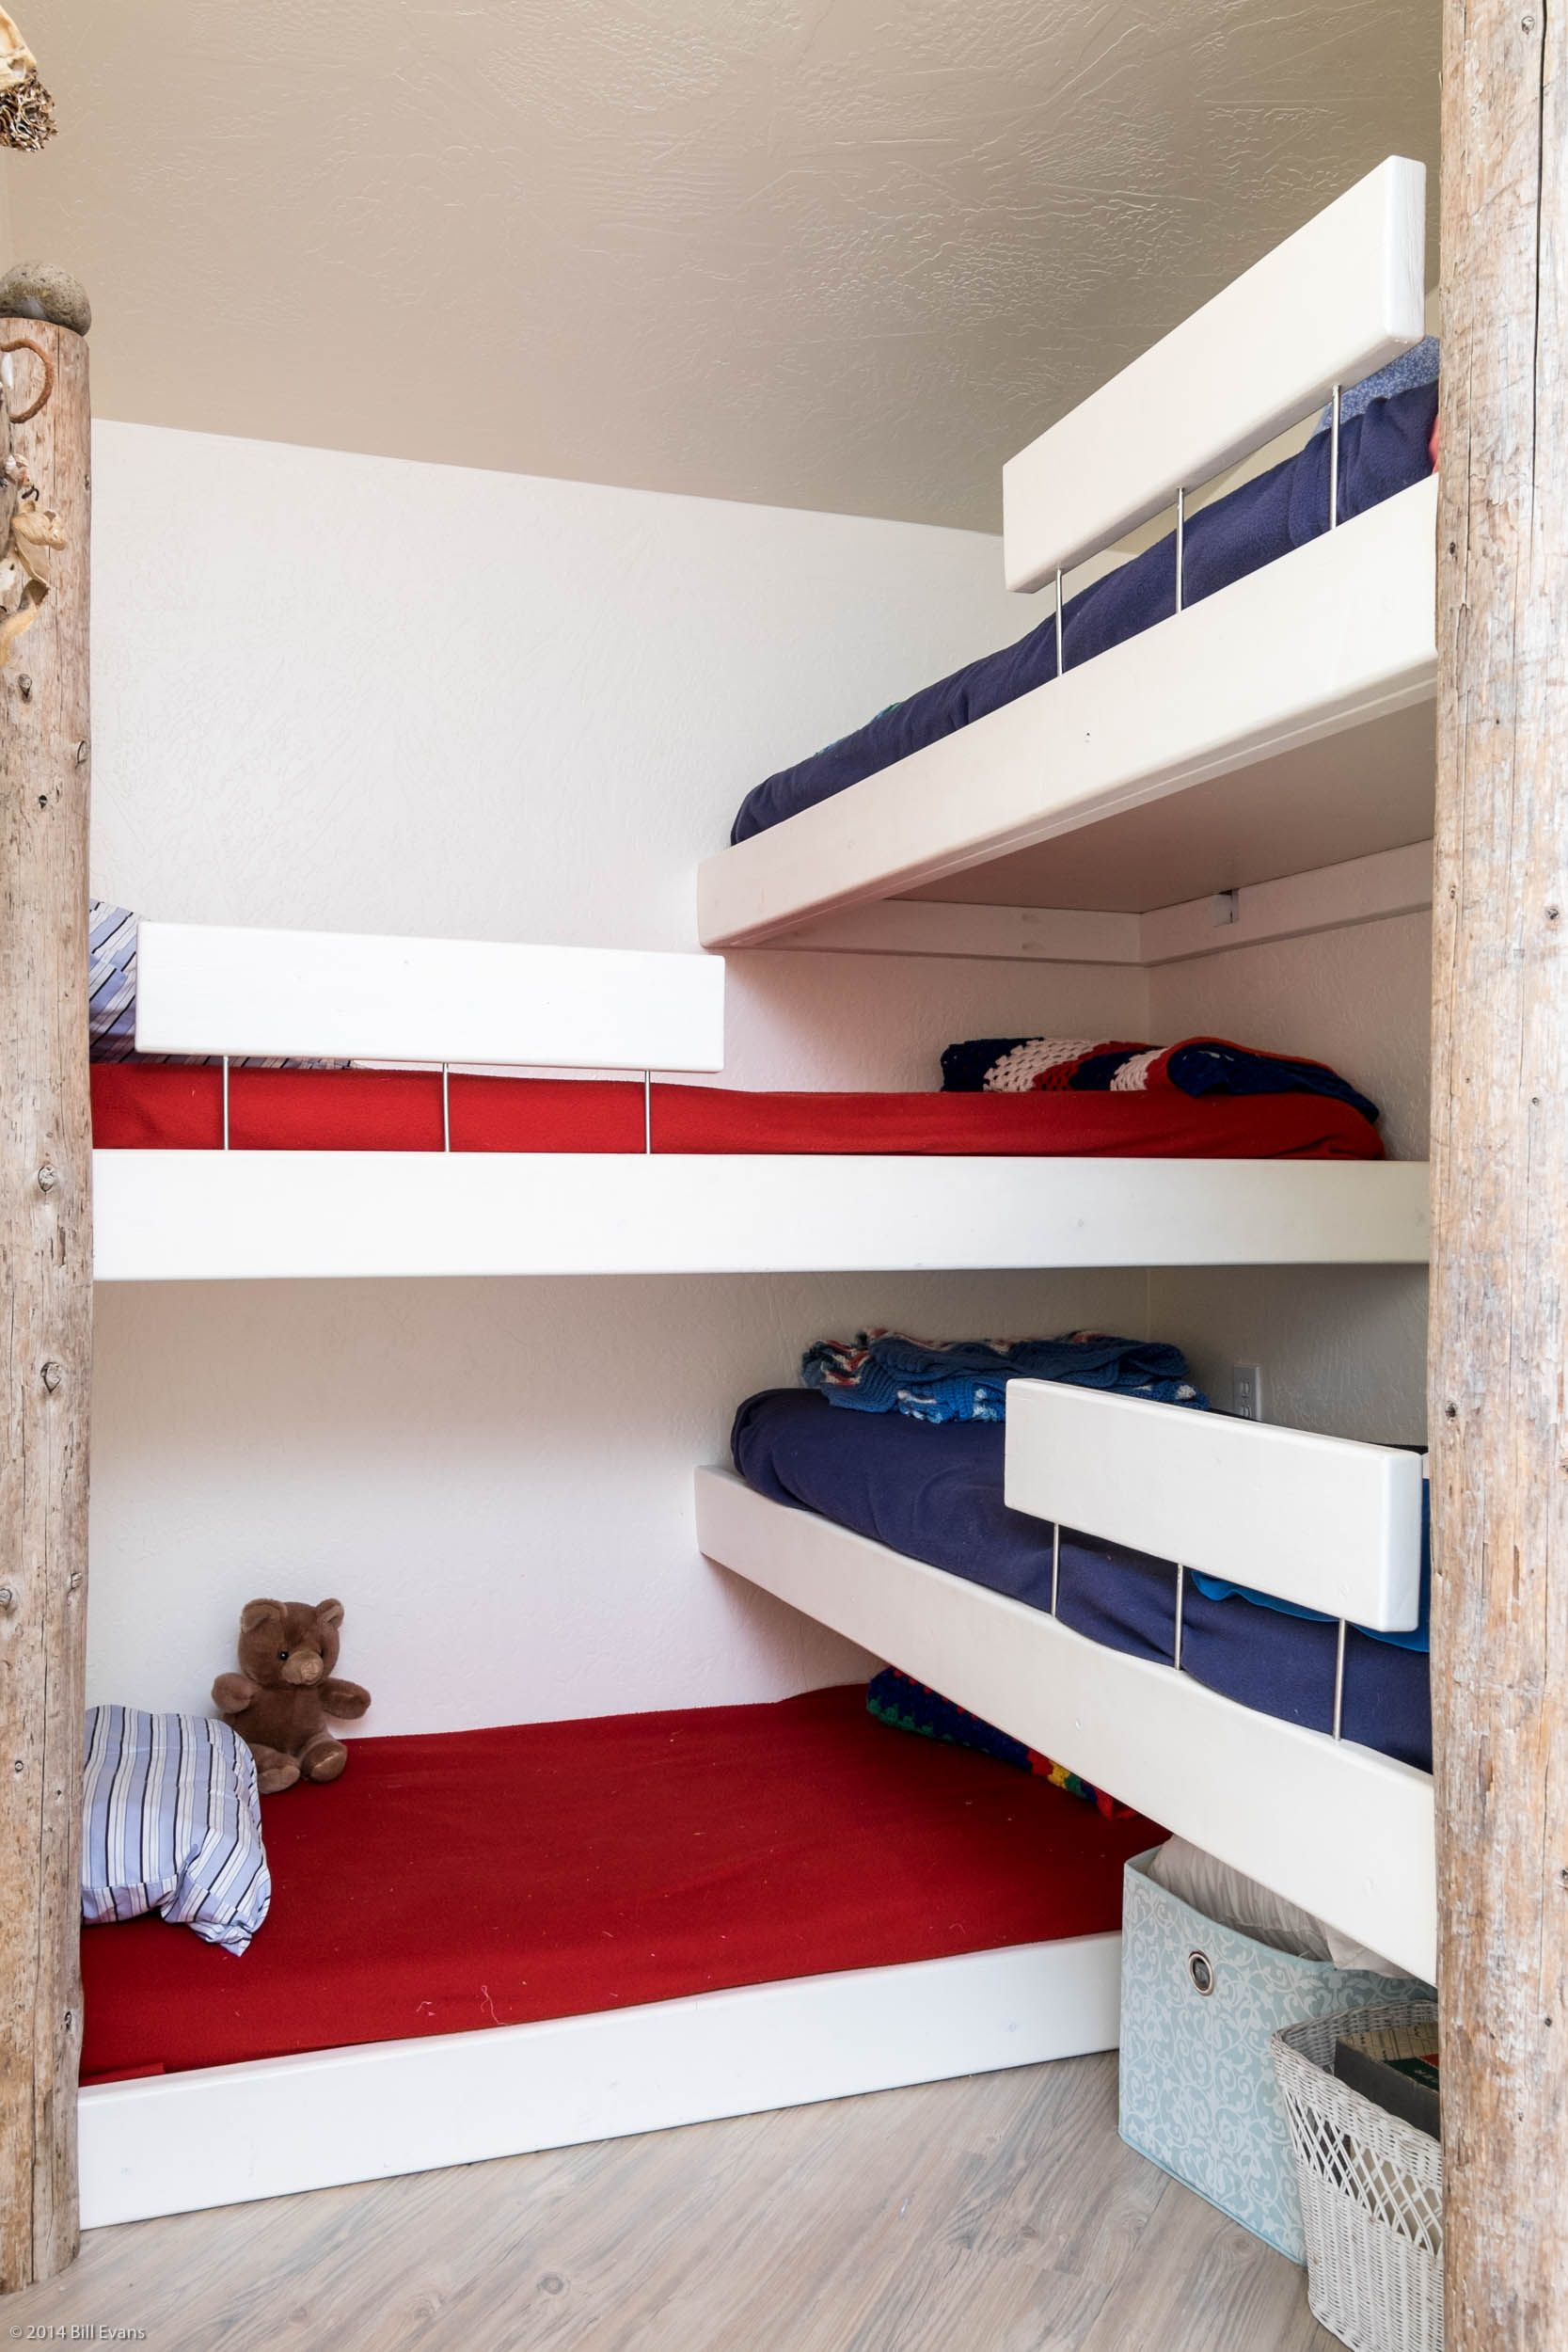 Ahorra Muebles Great Idea For That Odd Corner Built In Bunk Beds Lopez